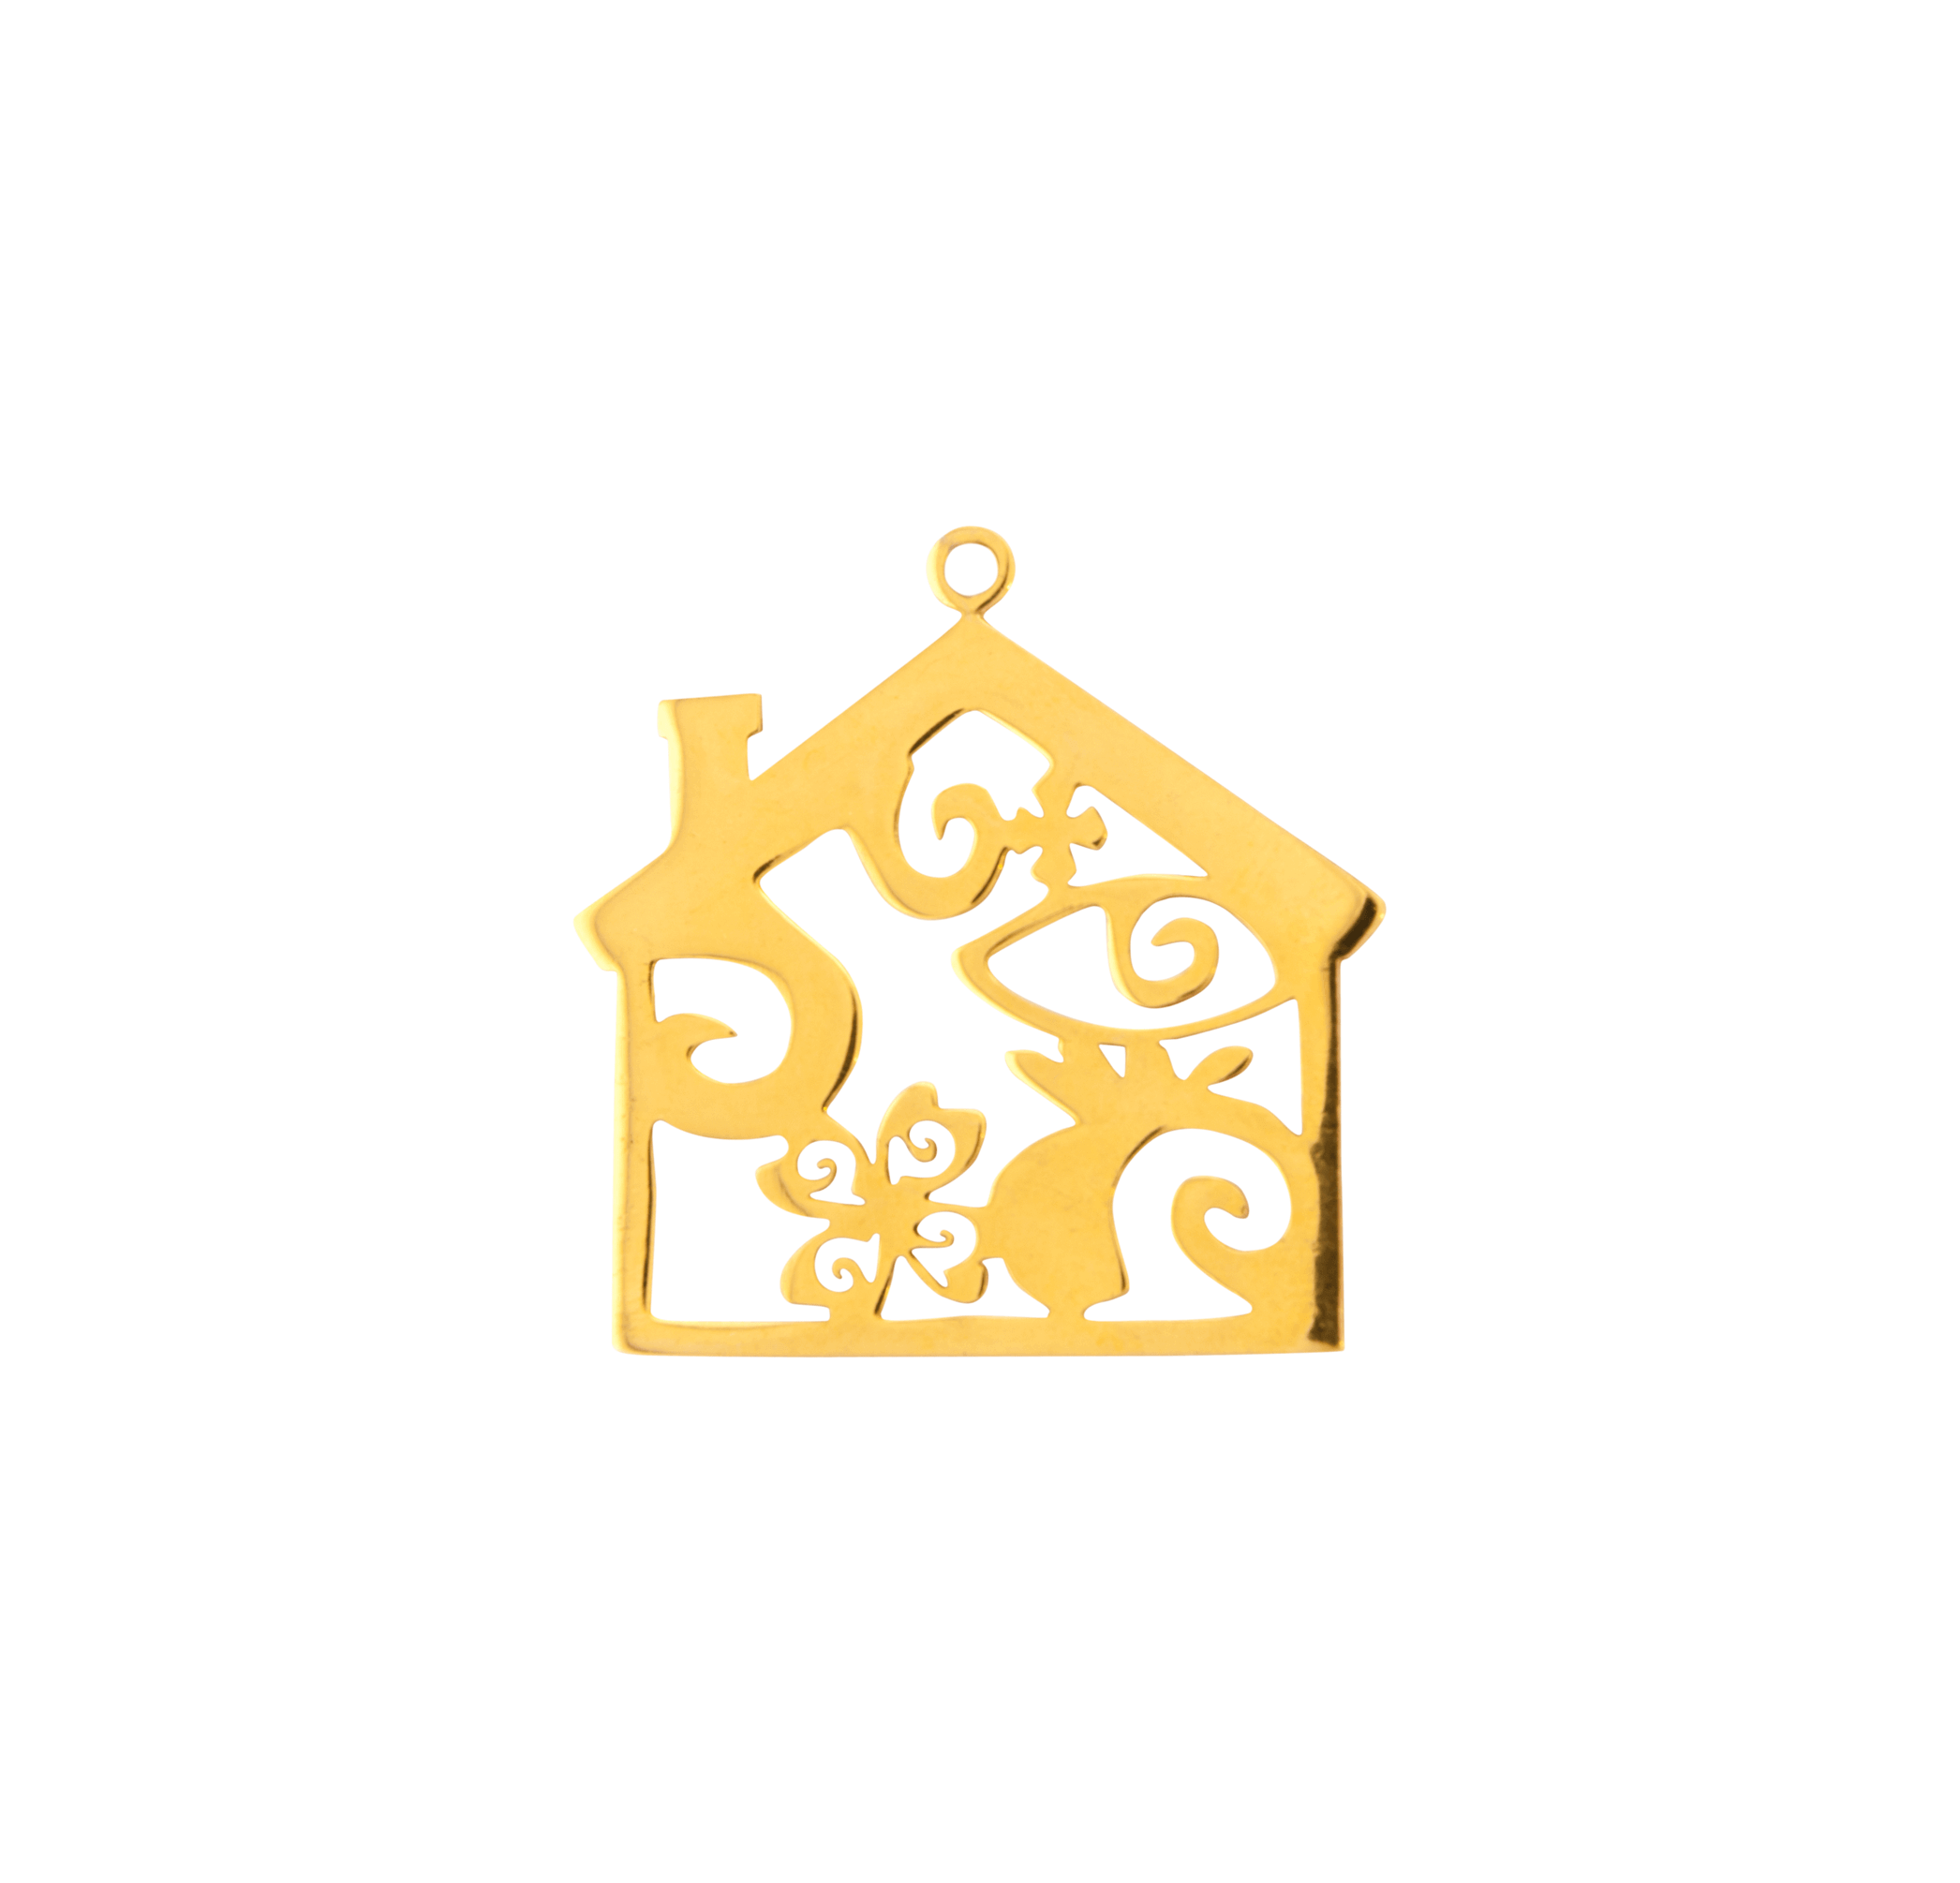 HOUSE GOLD PLATED 45mm (BRASS)